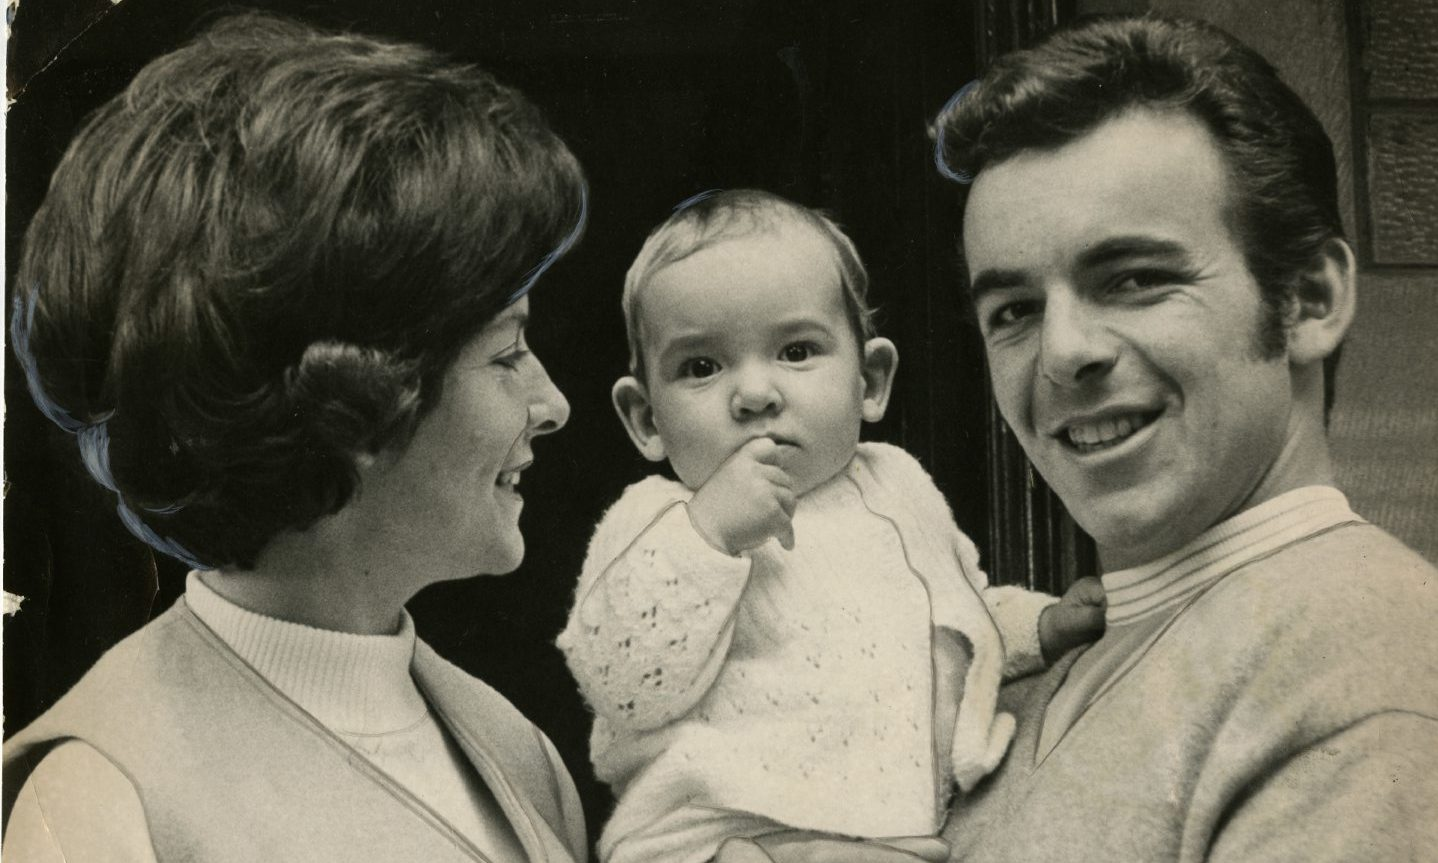 Tony Jacklin with his wife, Vivienne Jacklin and their son Bradley in 1970 where they were staying at the NCR guest house in Perth Road.